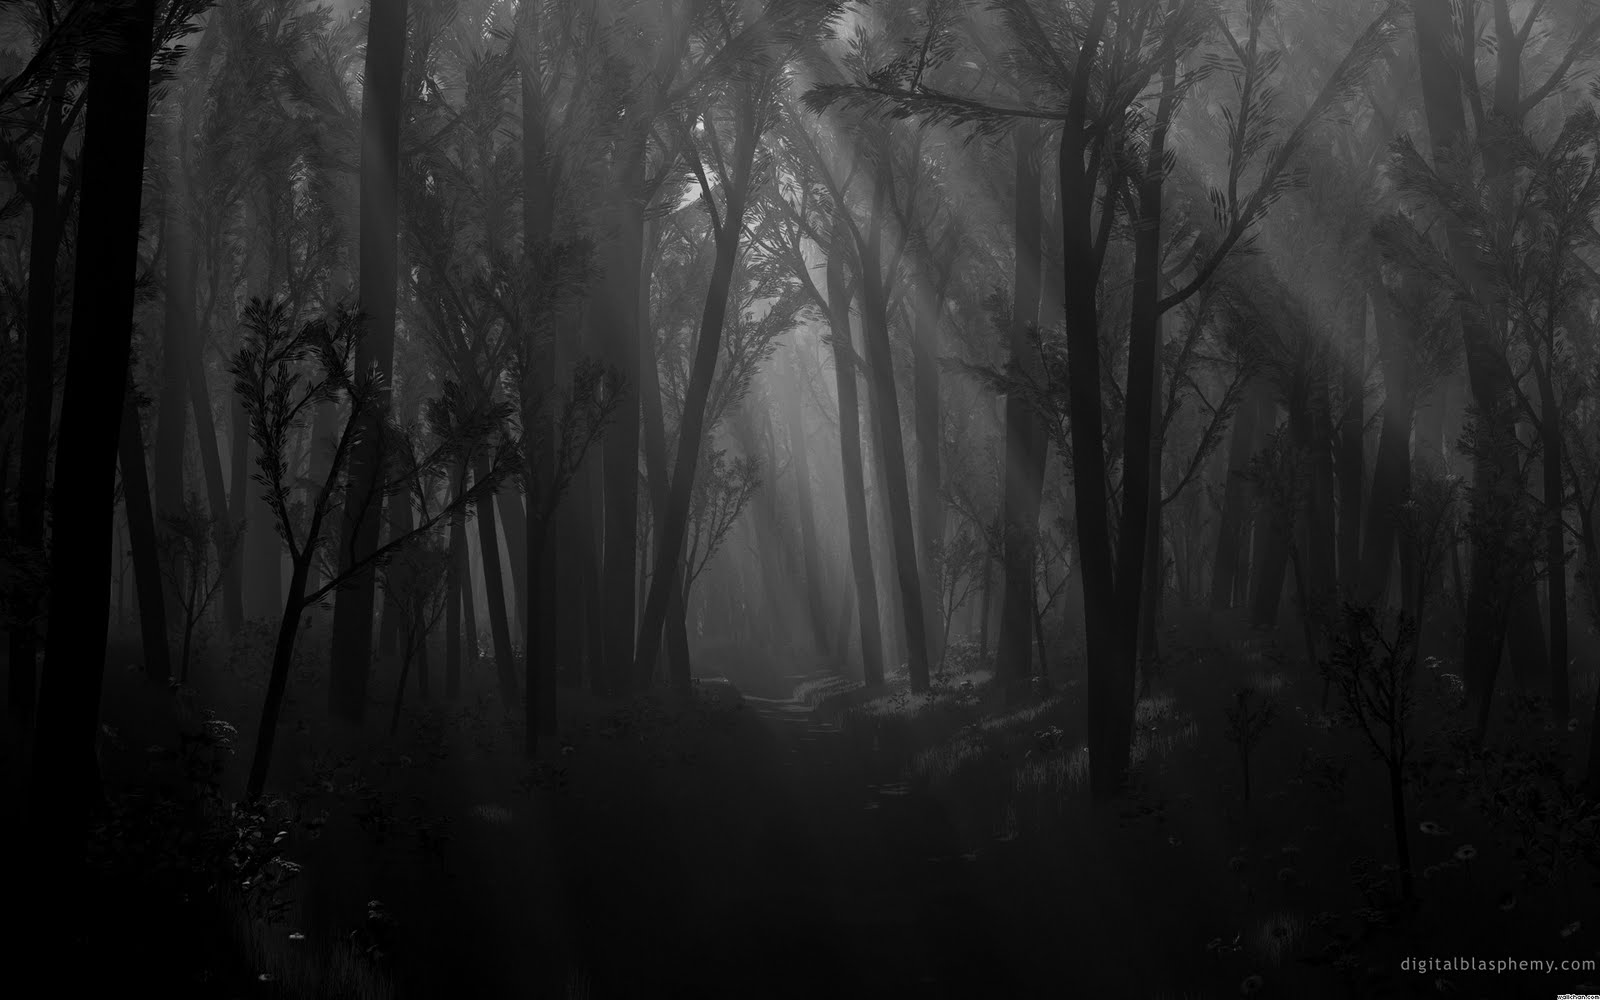 dark forest path shadows spooky monochrome wallpaper wallpaperjpg 1600x1000